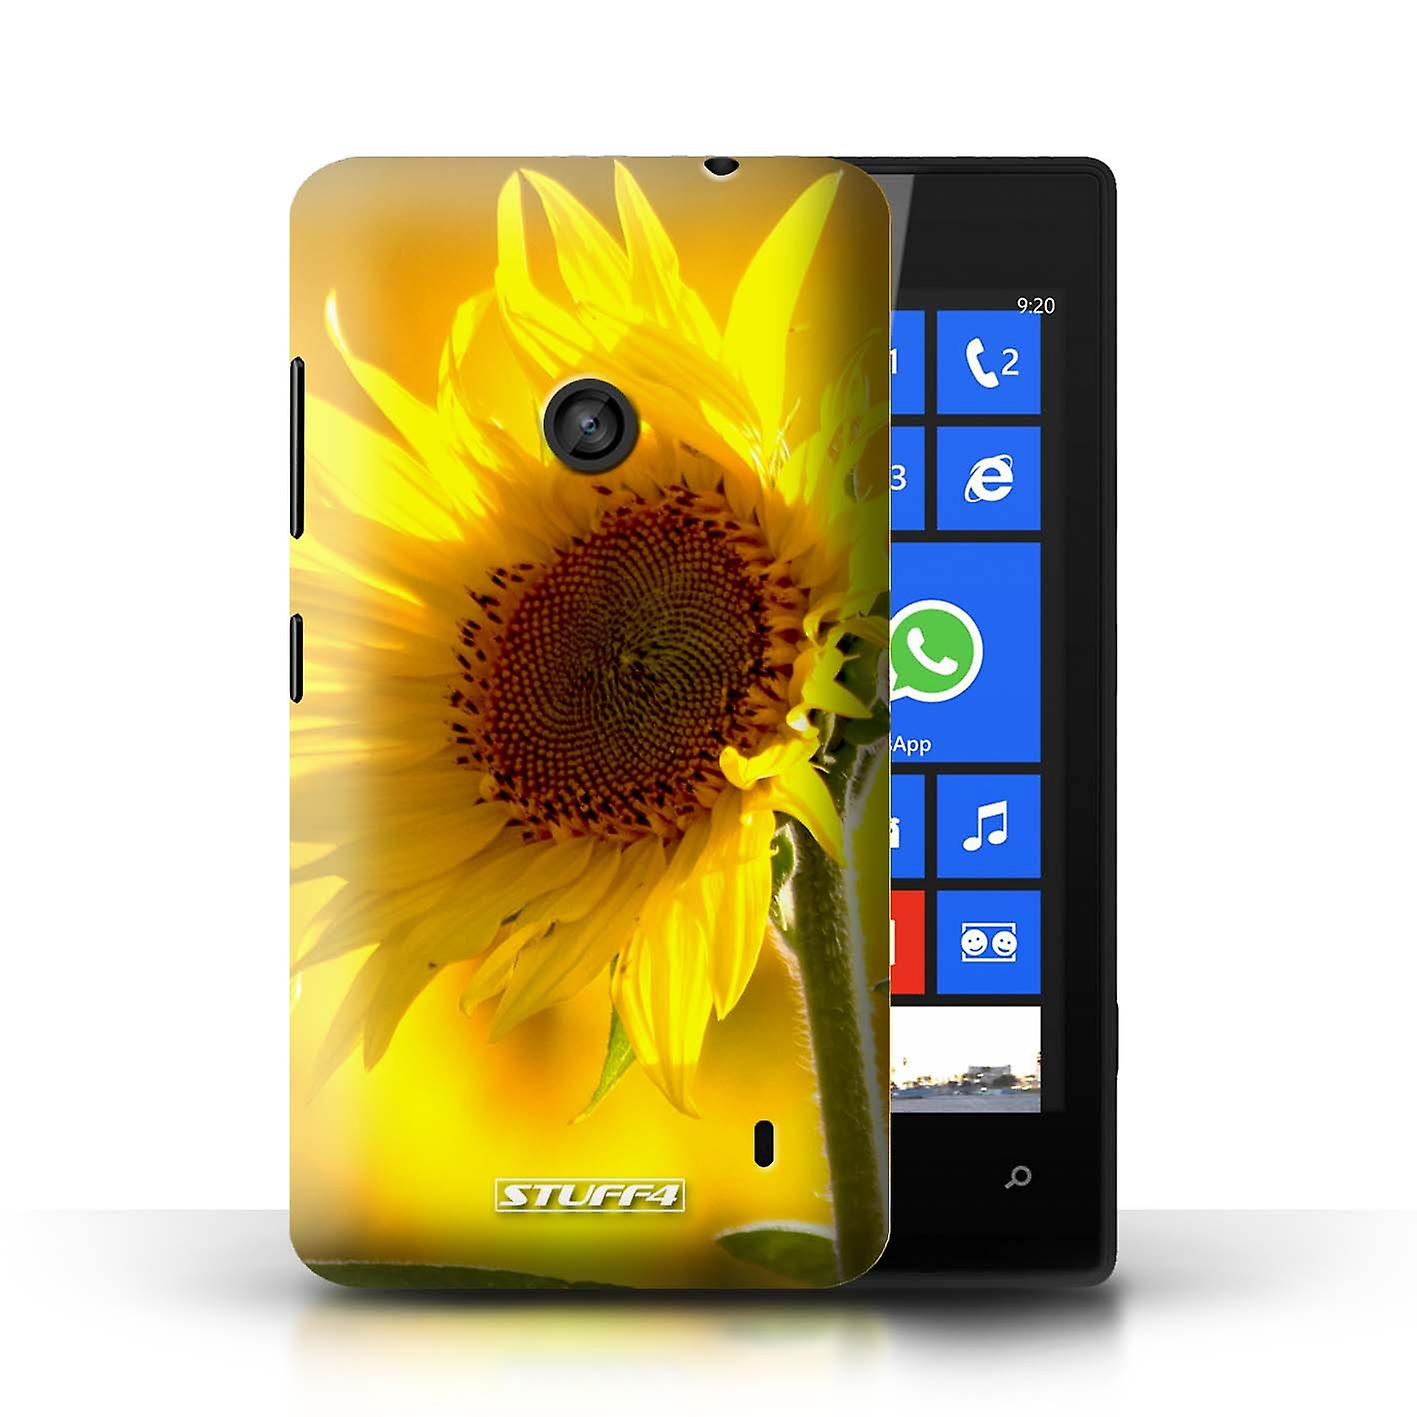 STUFF4 Case/Cover For Nokia Lumia 520/Yellow Flower/Floral